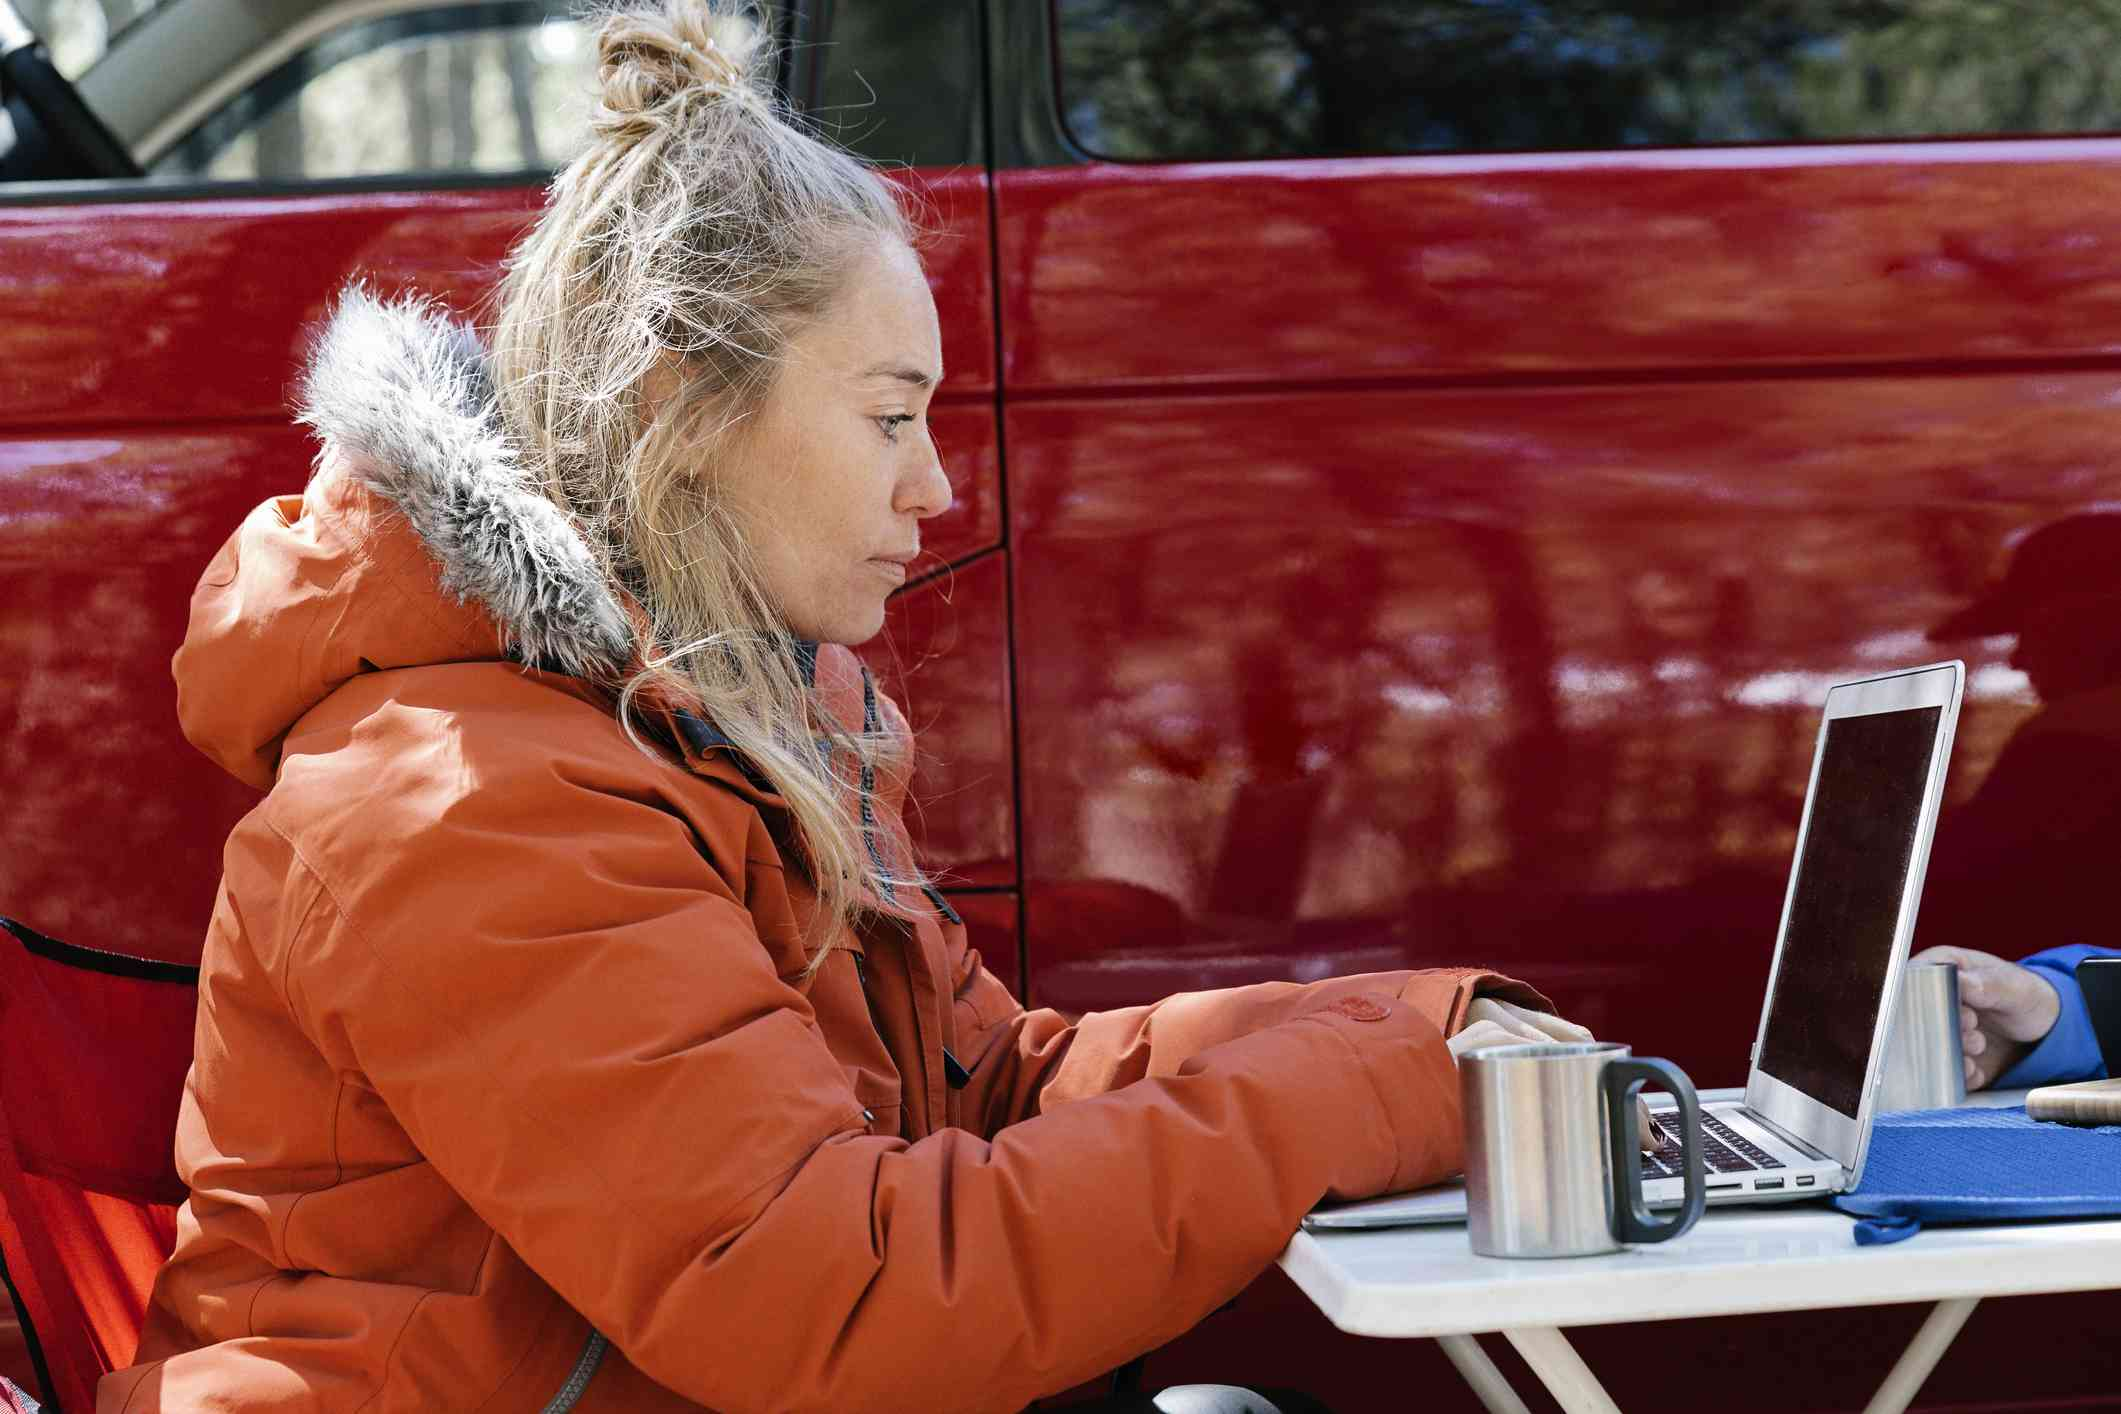 Person working on laptop outside of van